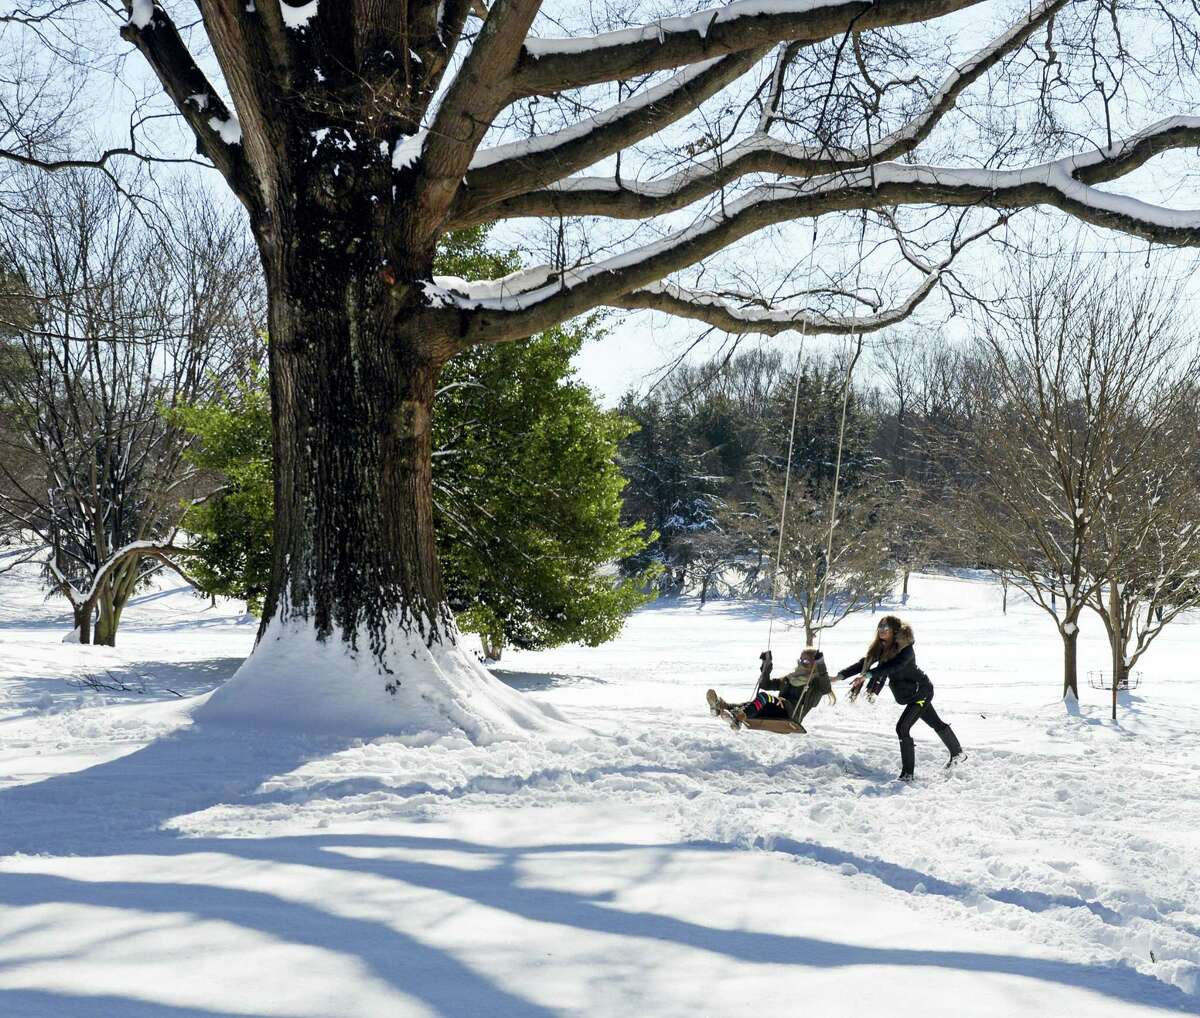 Vanessa Kirschner gives her friend, Victoria Koniuk, a push on a swing at Wake Forest's Davis Field Saturday, Jan. 7, 2017, in Winston-Salem, N.C. The two freshmen were back on campus for sorority rush but that was delayed because of the snow. Classes are scheduled to begin again on Tuesday. (Walt Unks/The Winston-Salem Journal via AP)